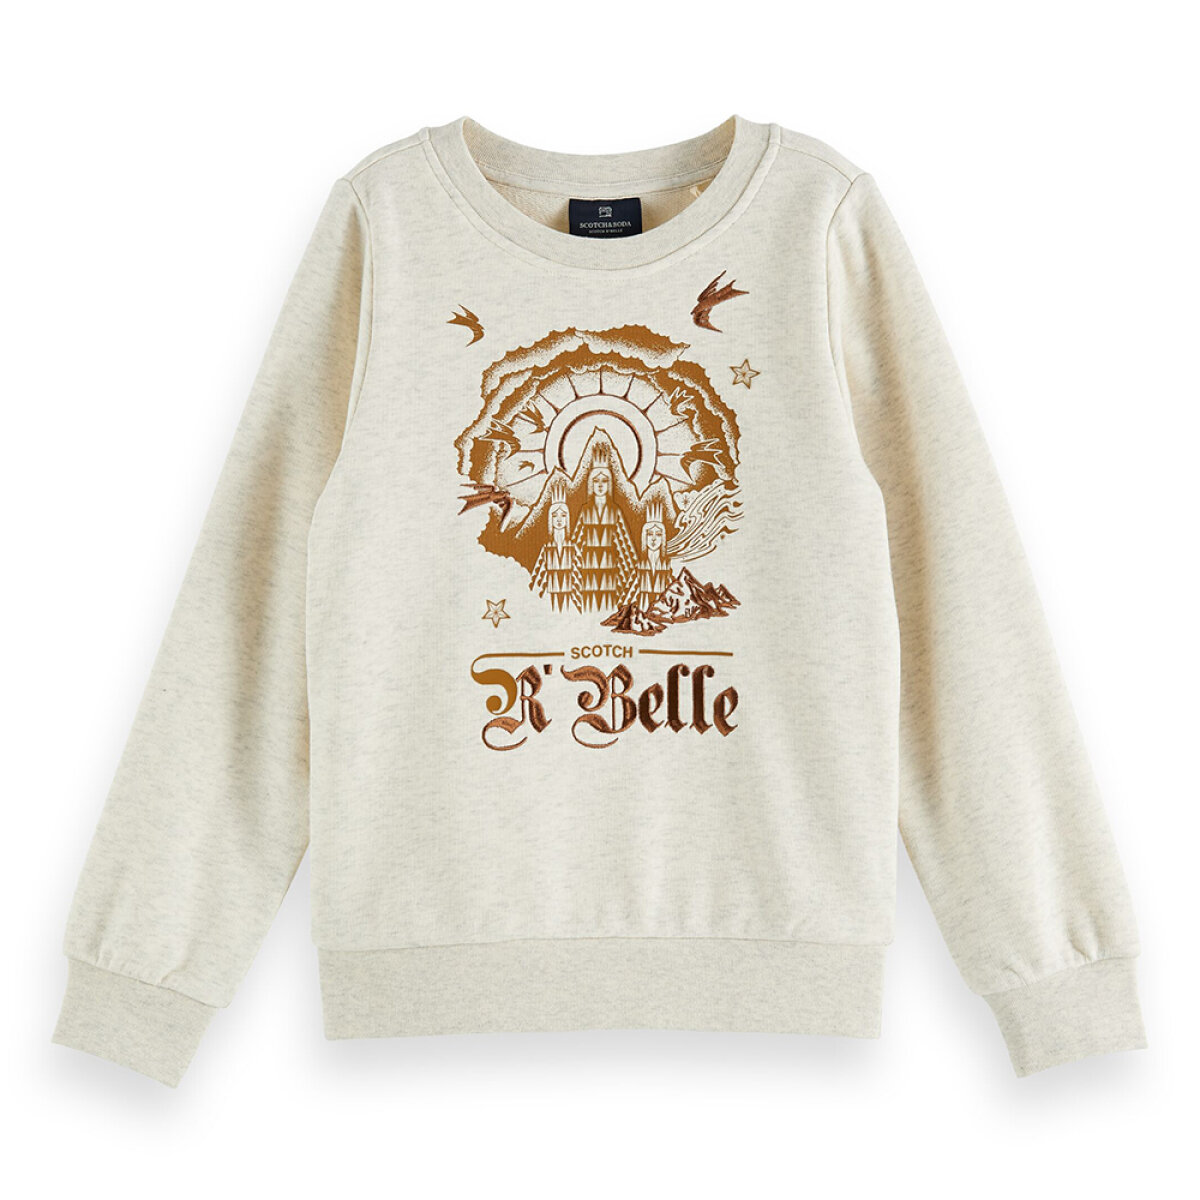 Scotch & Soda meisjes sweater 160195 ecru